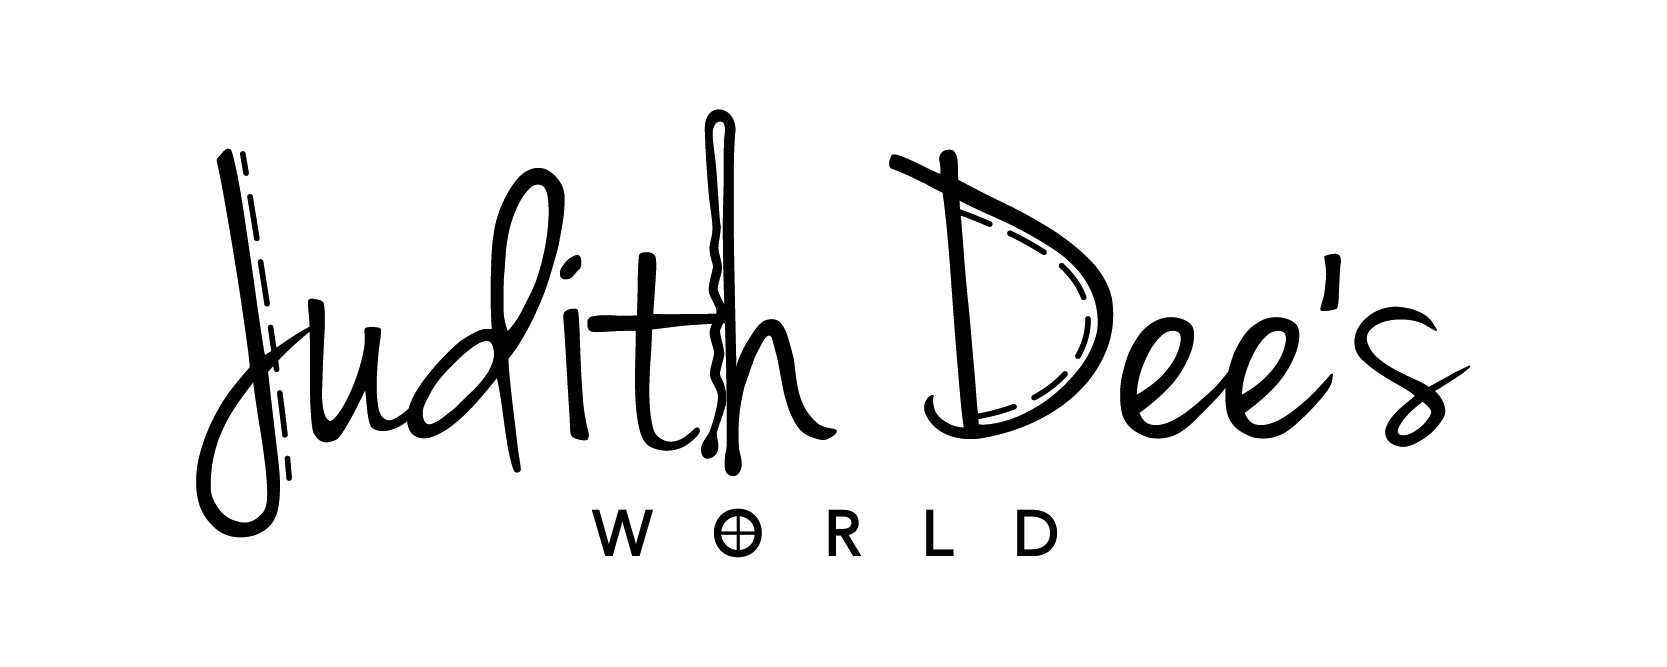 JUDITH_DEES_WORLD_300x120 px_black